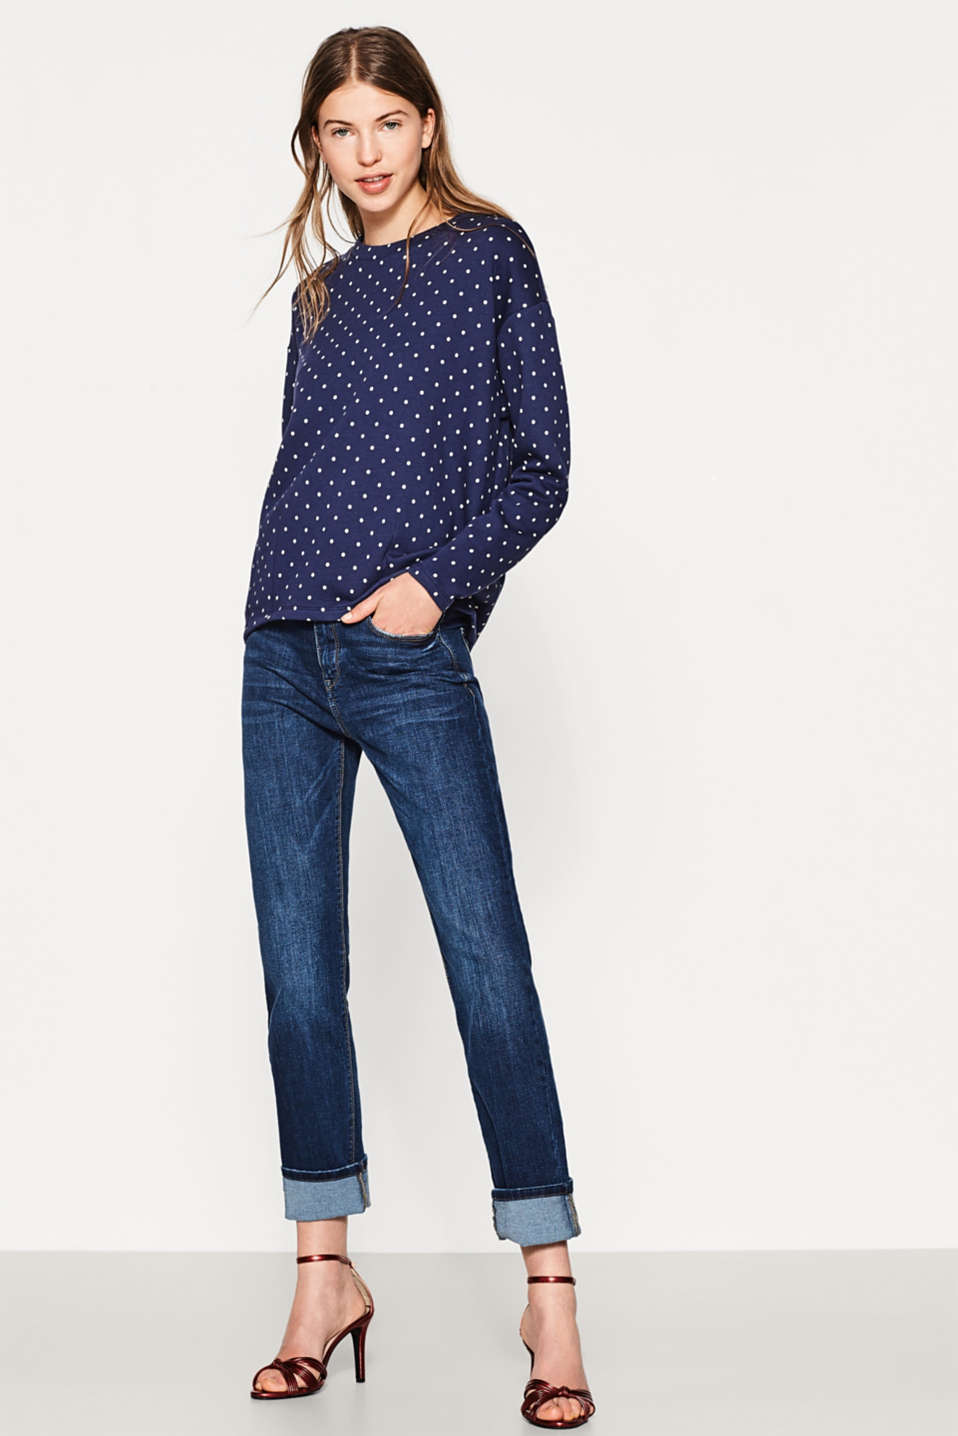 Esprit - Light polka dot sweatshirt, 100% cotton